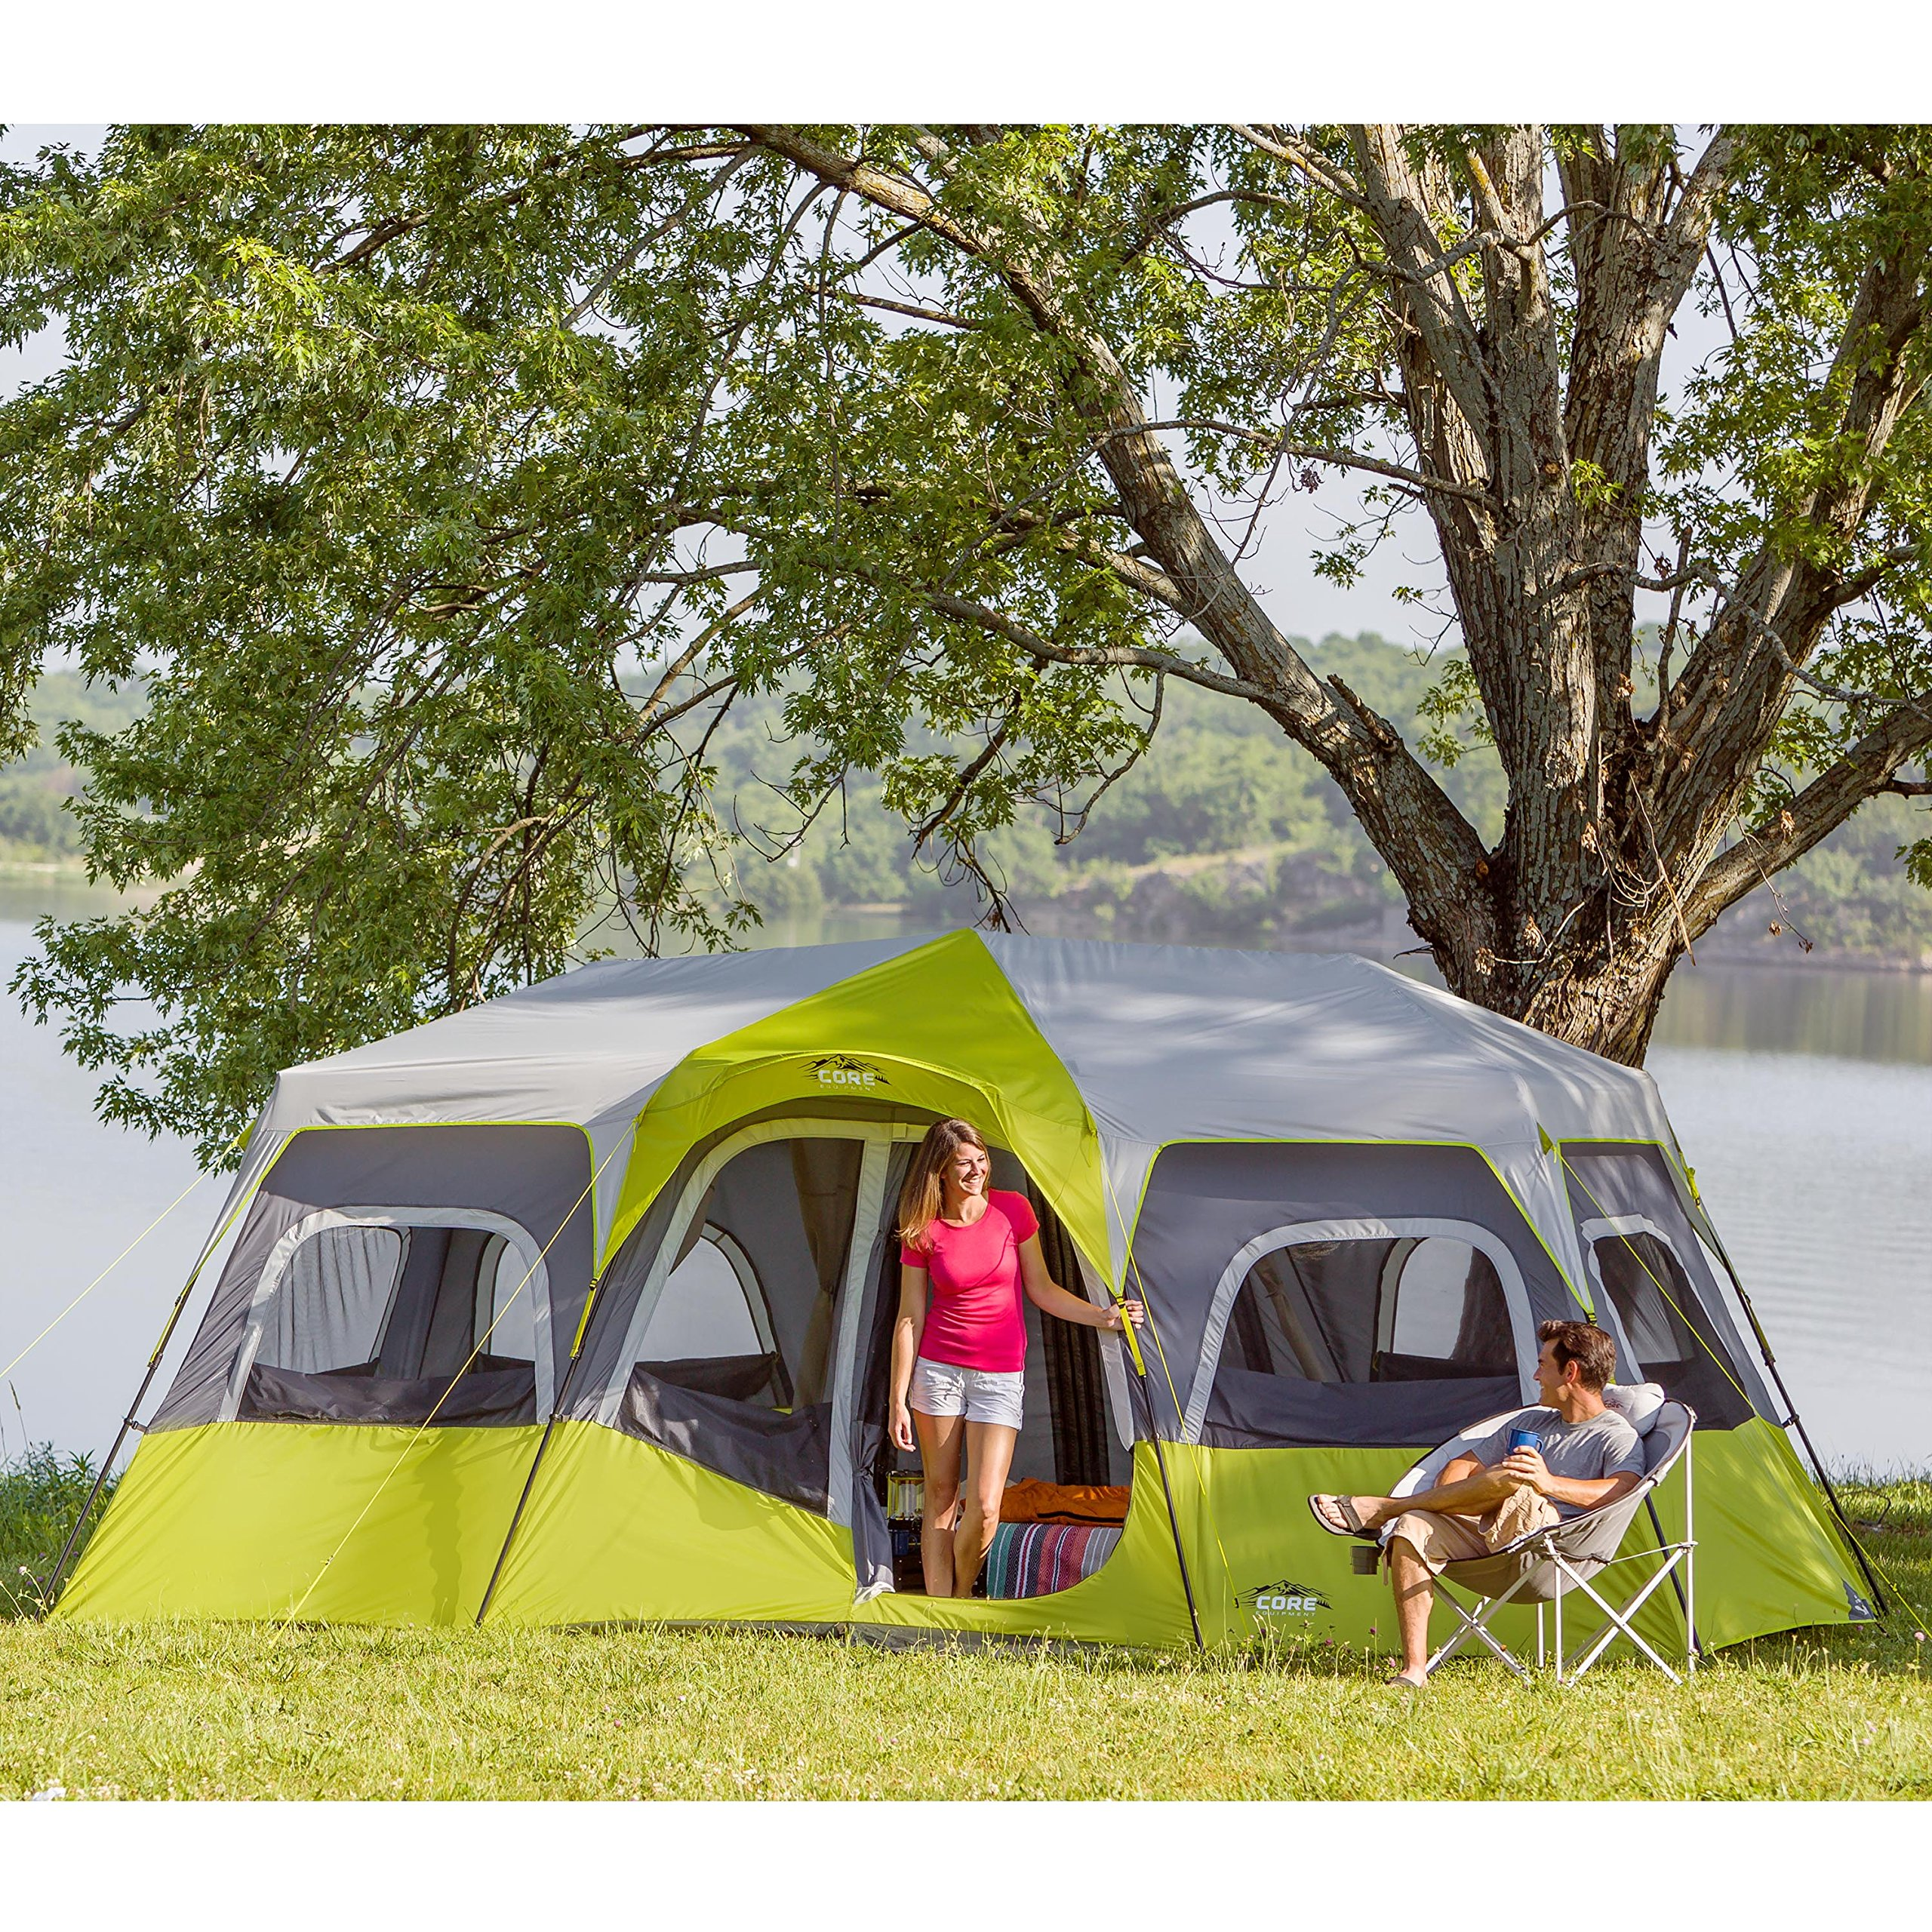 CORE 12 Person Instant Cabin Tent - 18' x 10' by CORE (Image #4)